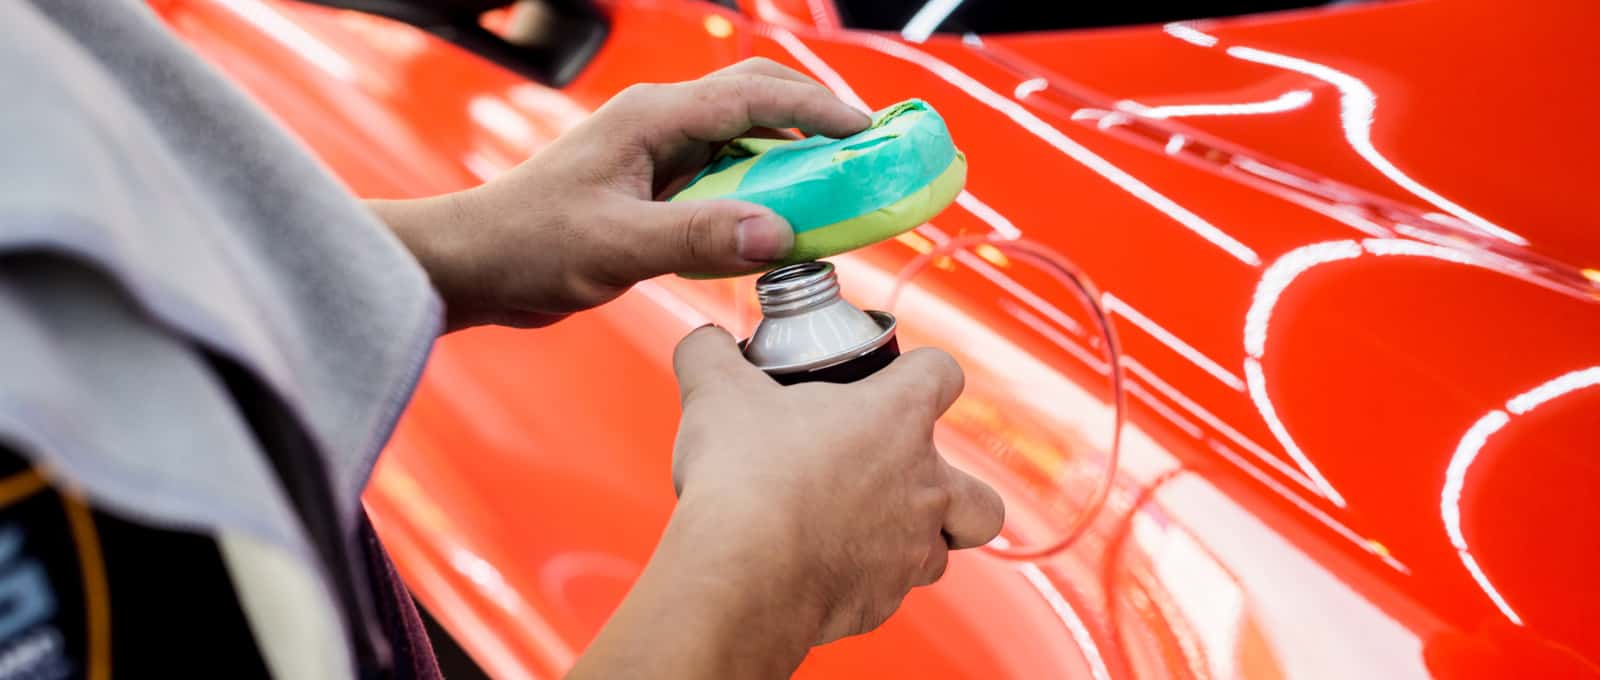 car service worker applying coating on a car